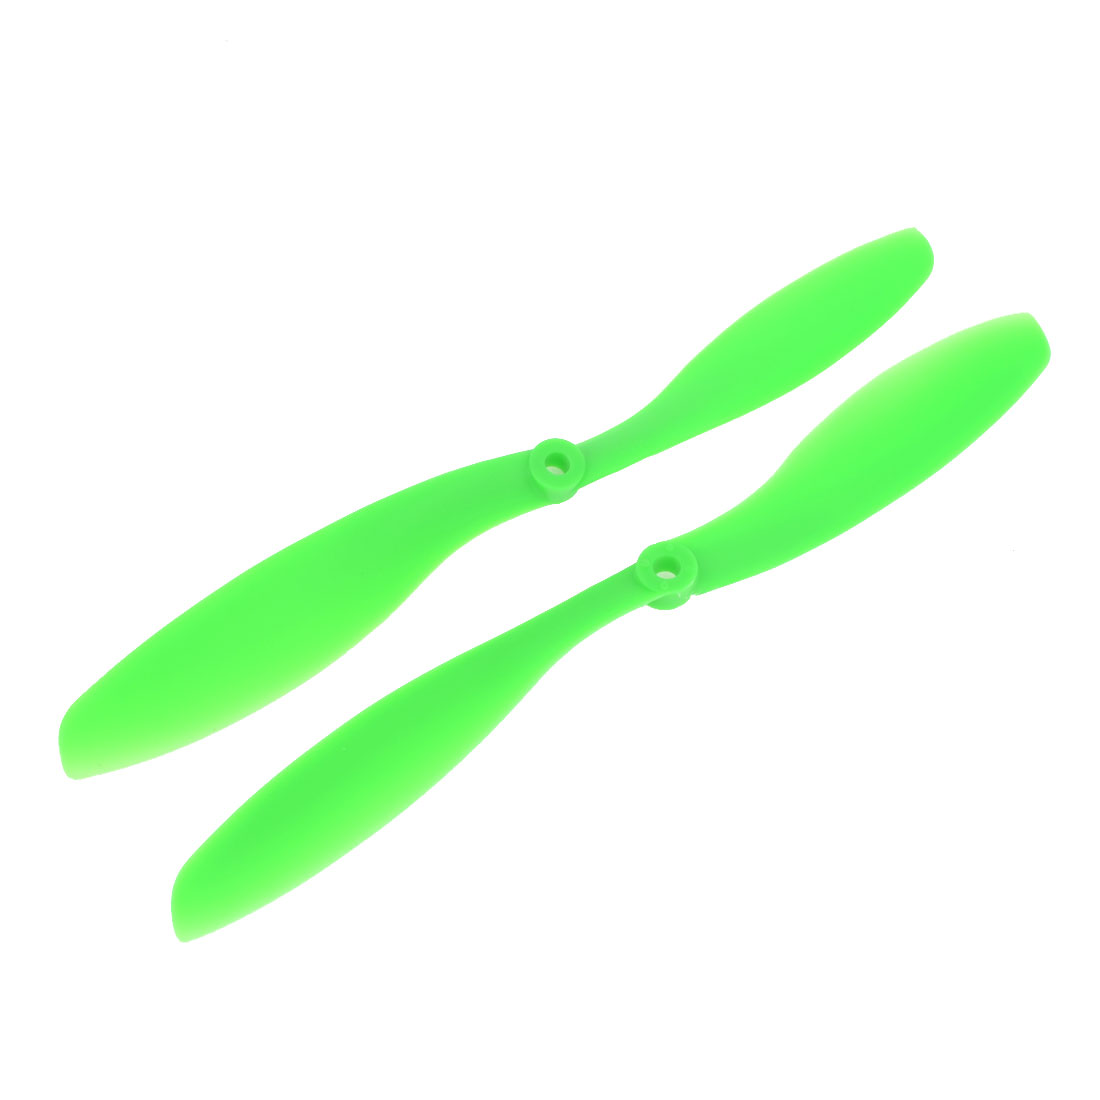 Pair Green 8x4.5 2-Vanes CW CCW Propeller for 5mm Shaft Dia RC Model Aircraft